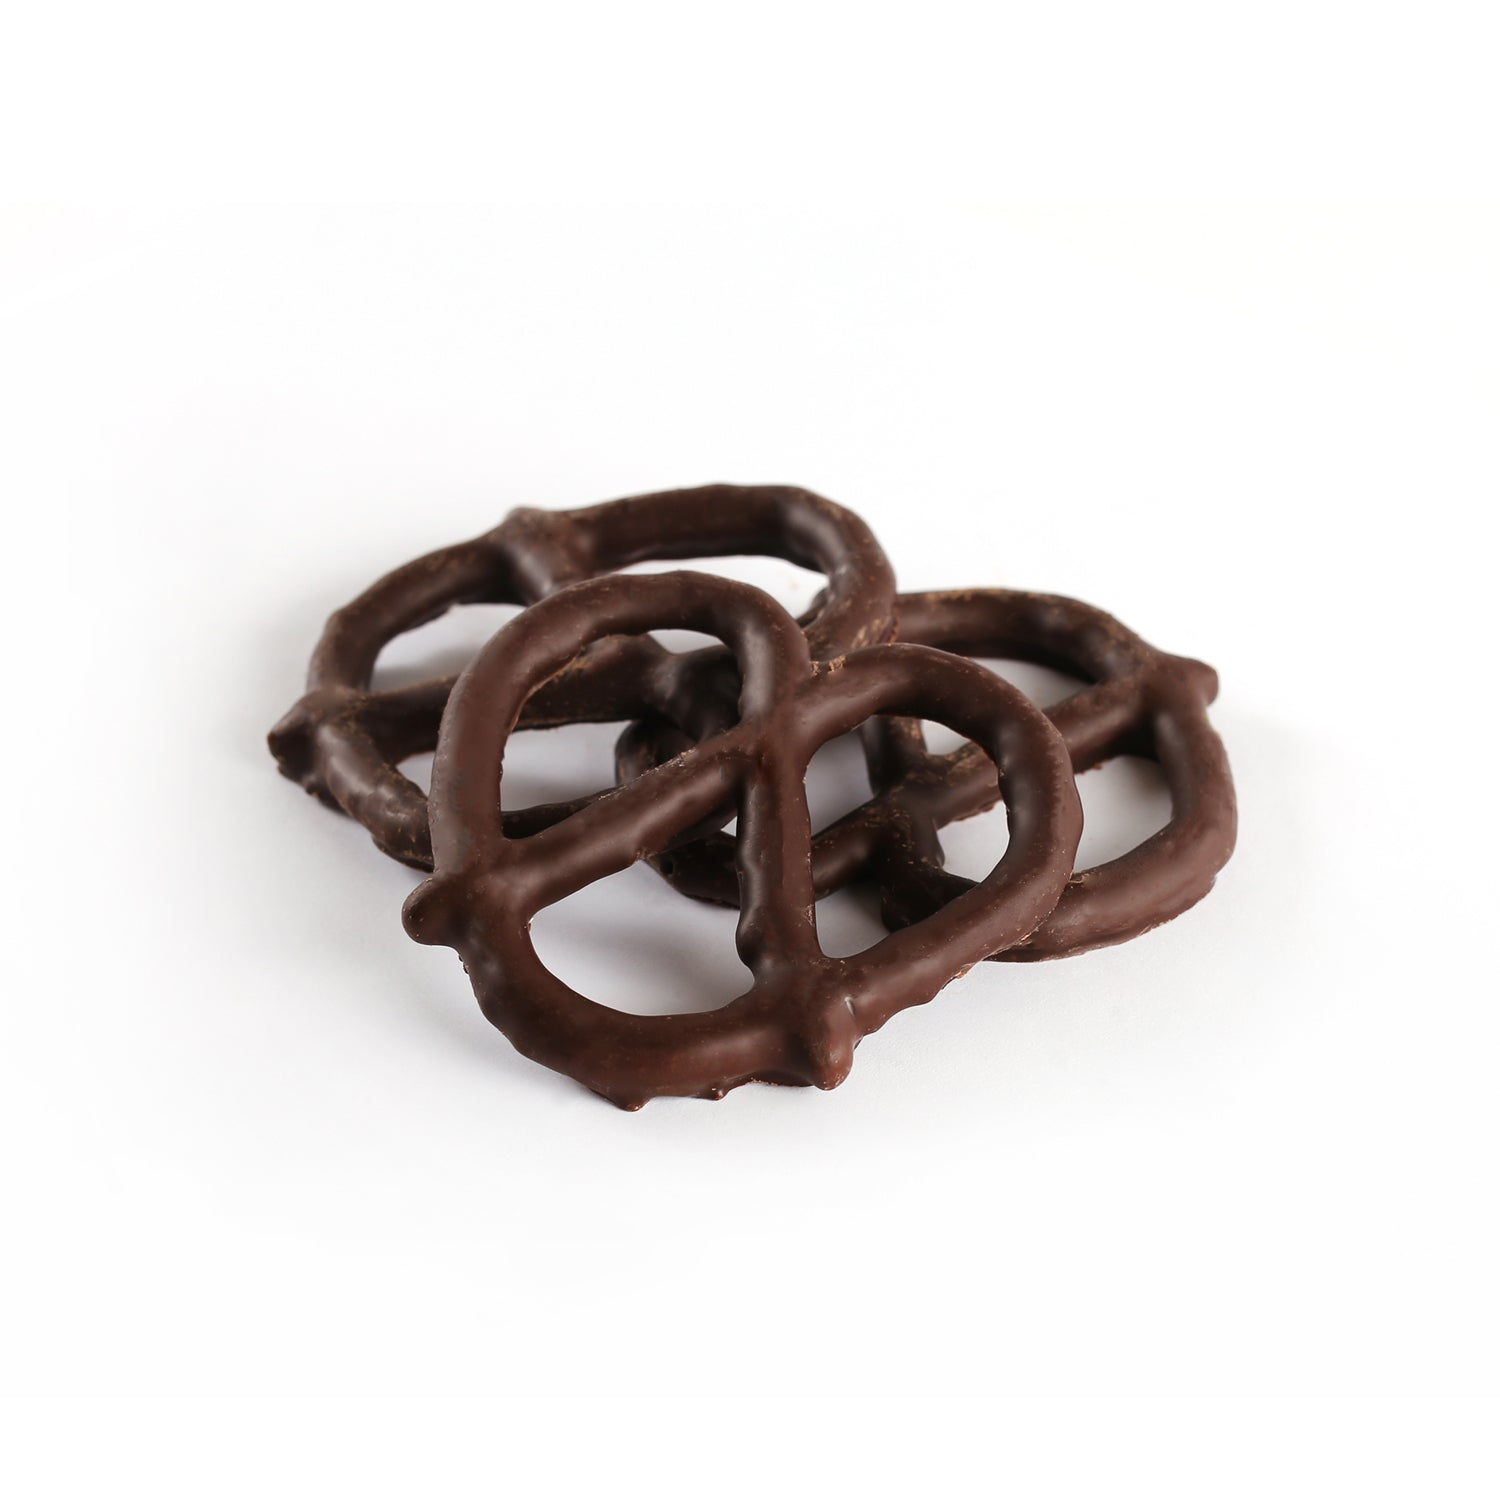 Pretzels covered in milk or dark chocolate.